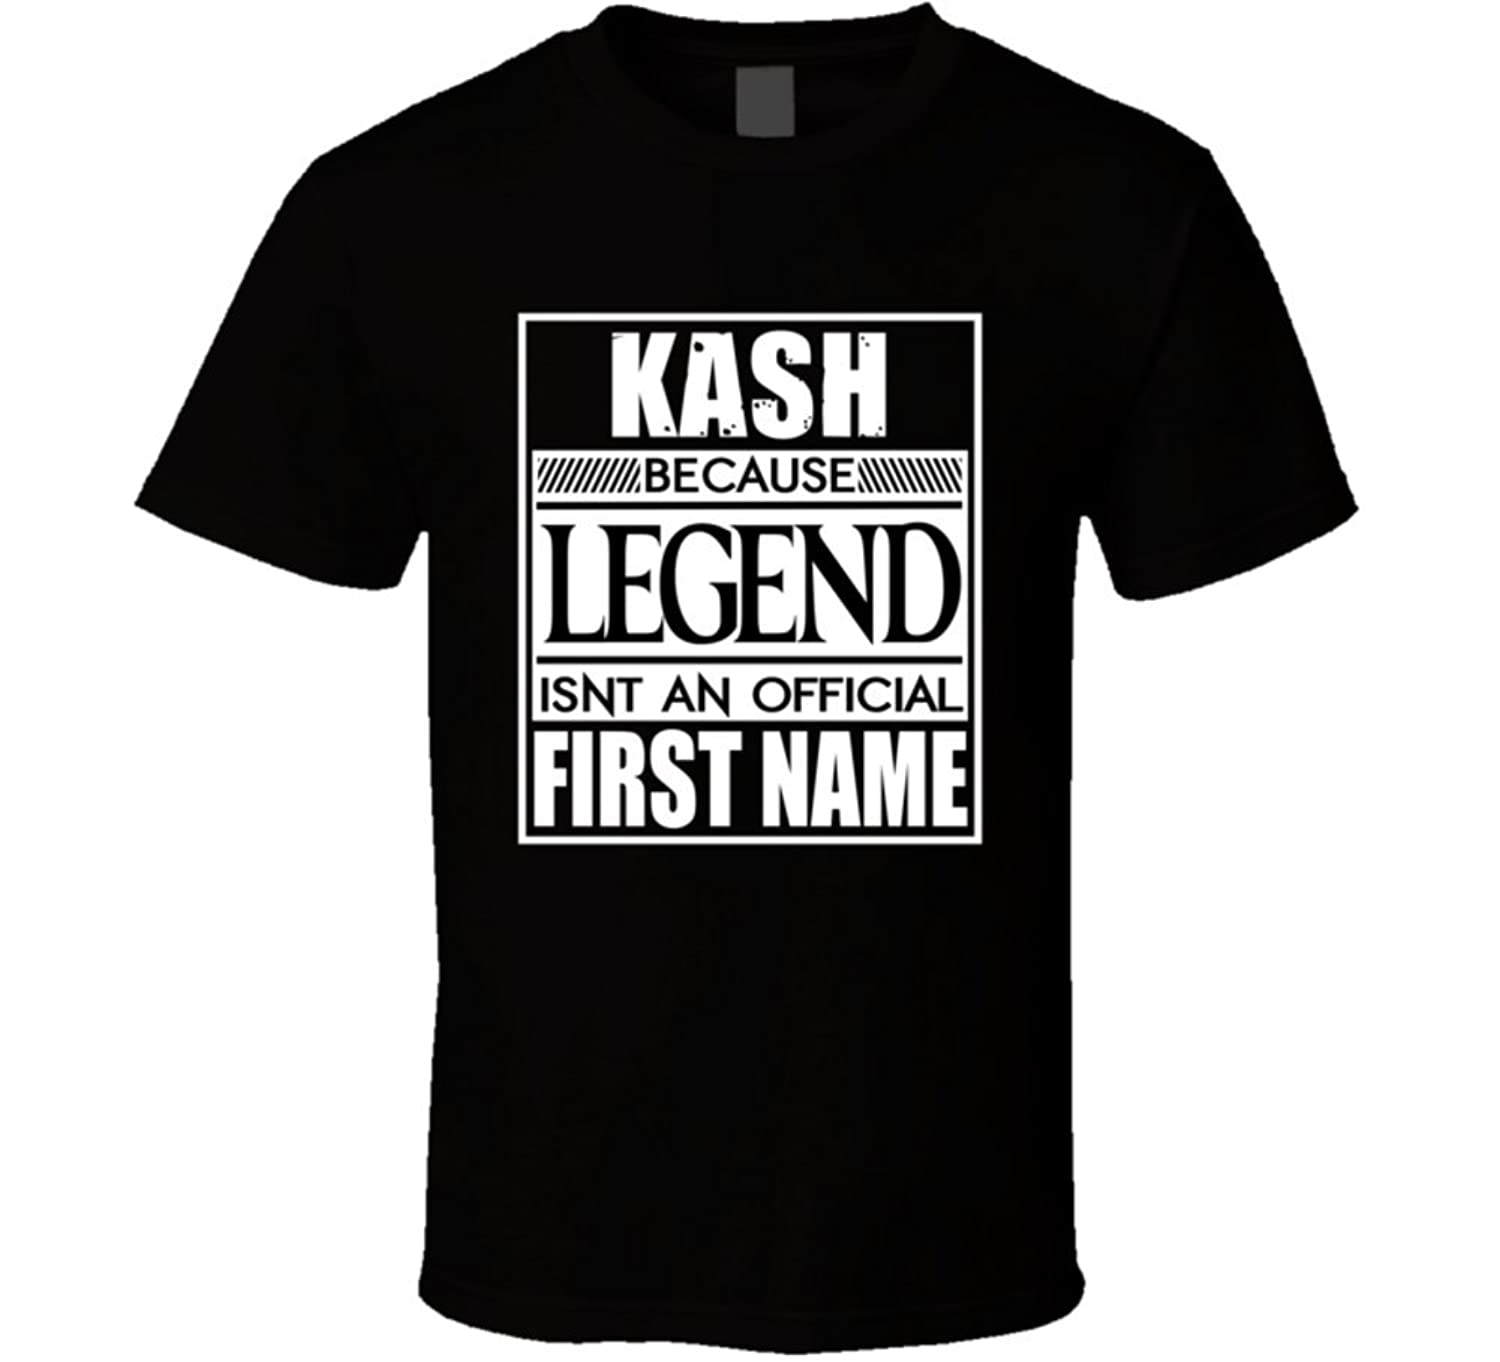 Kash Because Legend official First Name Funny T Shirt